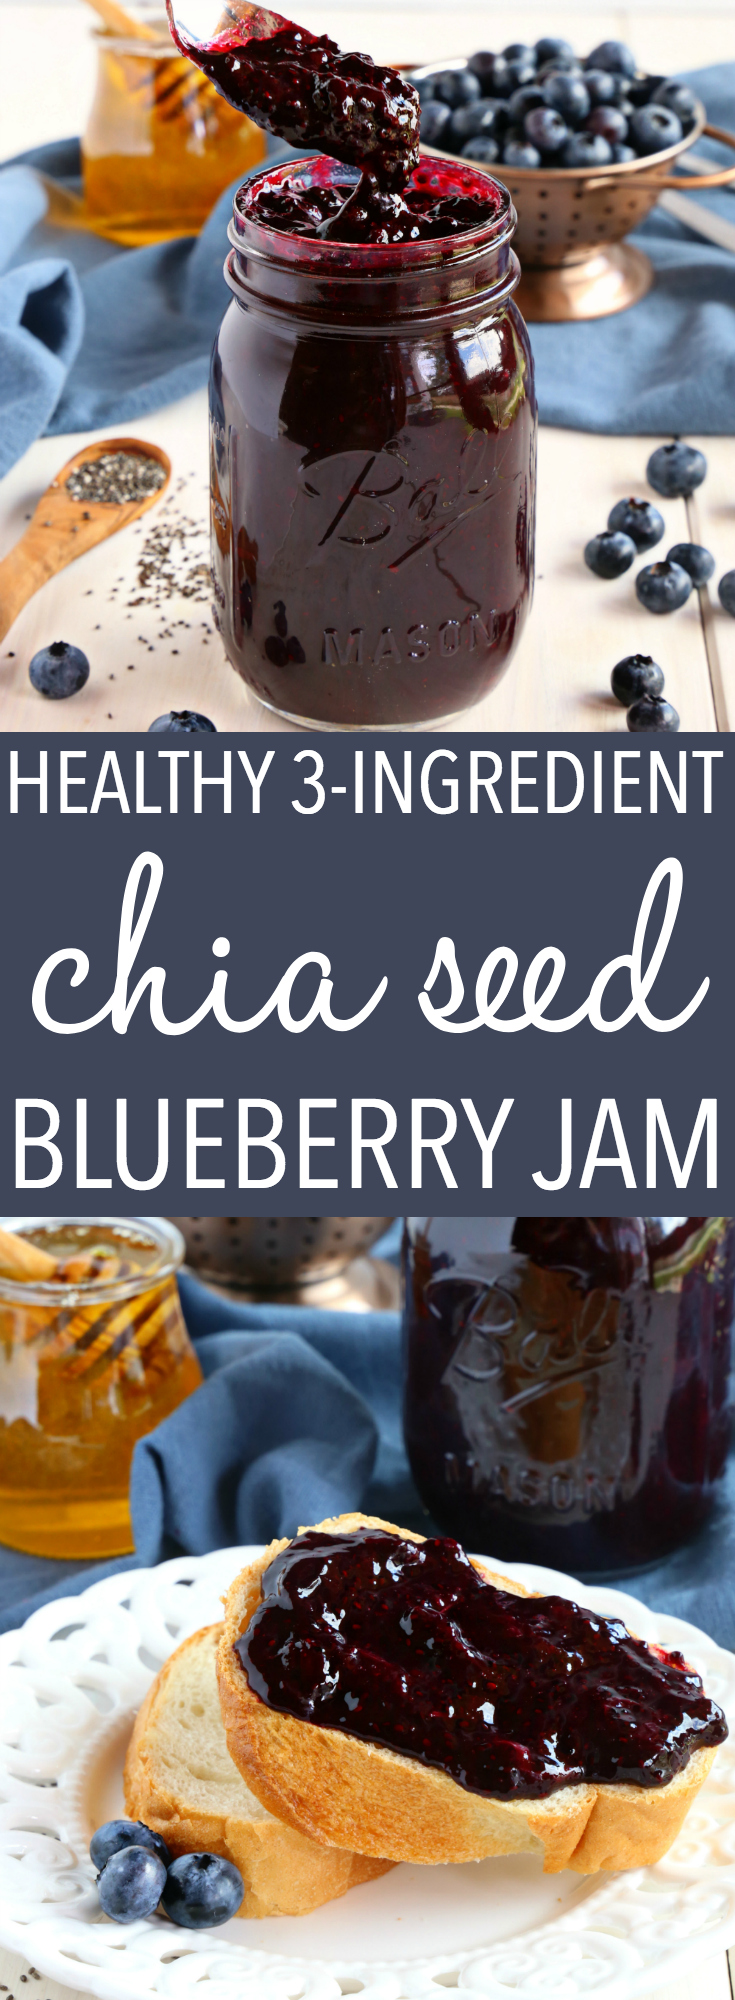 This Healthy 3-Ingredient Chia Seed Blueberry Jam is a great healthy alternative to conventional jam! It's made with 3 healthy, natural, whole-food ingredients and it's quick and easy to make! Recipe from thebusybaker.ca! #chiaseedjam #chiaseed #blueberry #jam #homemade #easyrecipe #recipevideo #canning #preserving via @busybakerblog